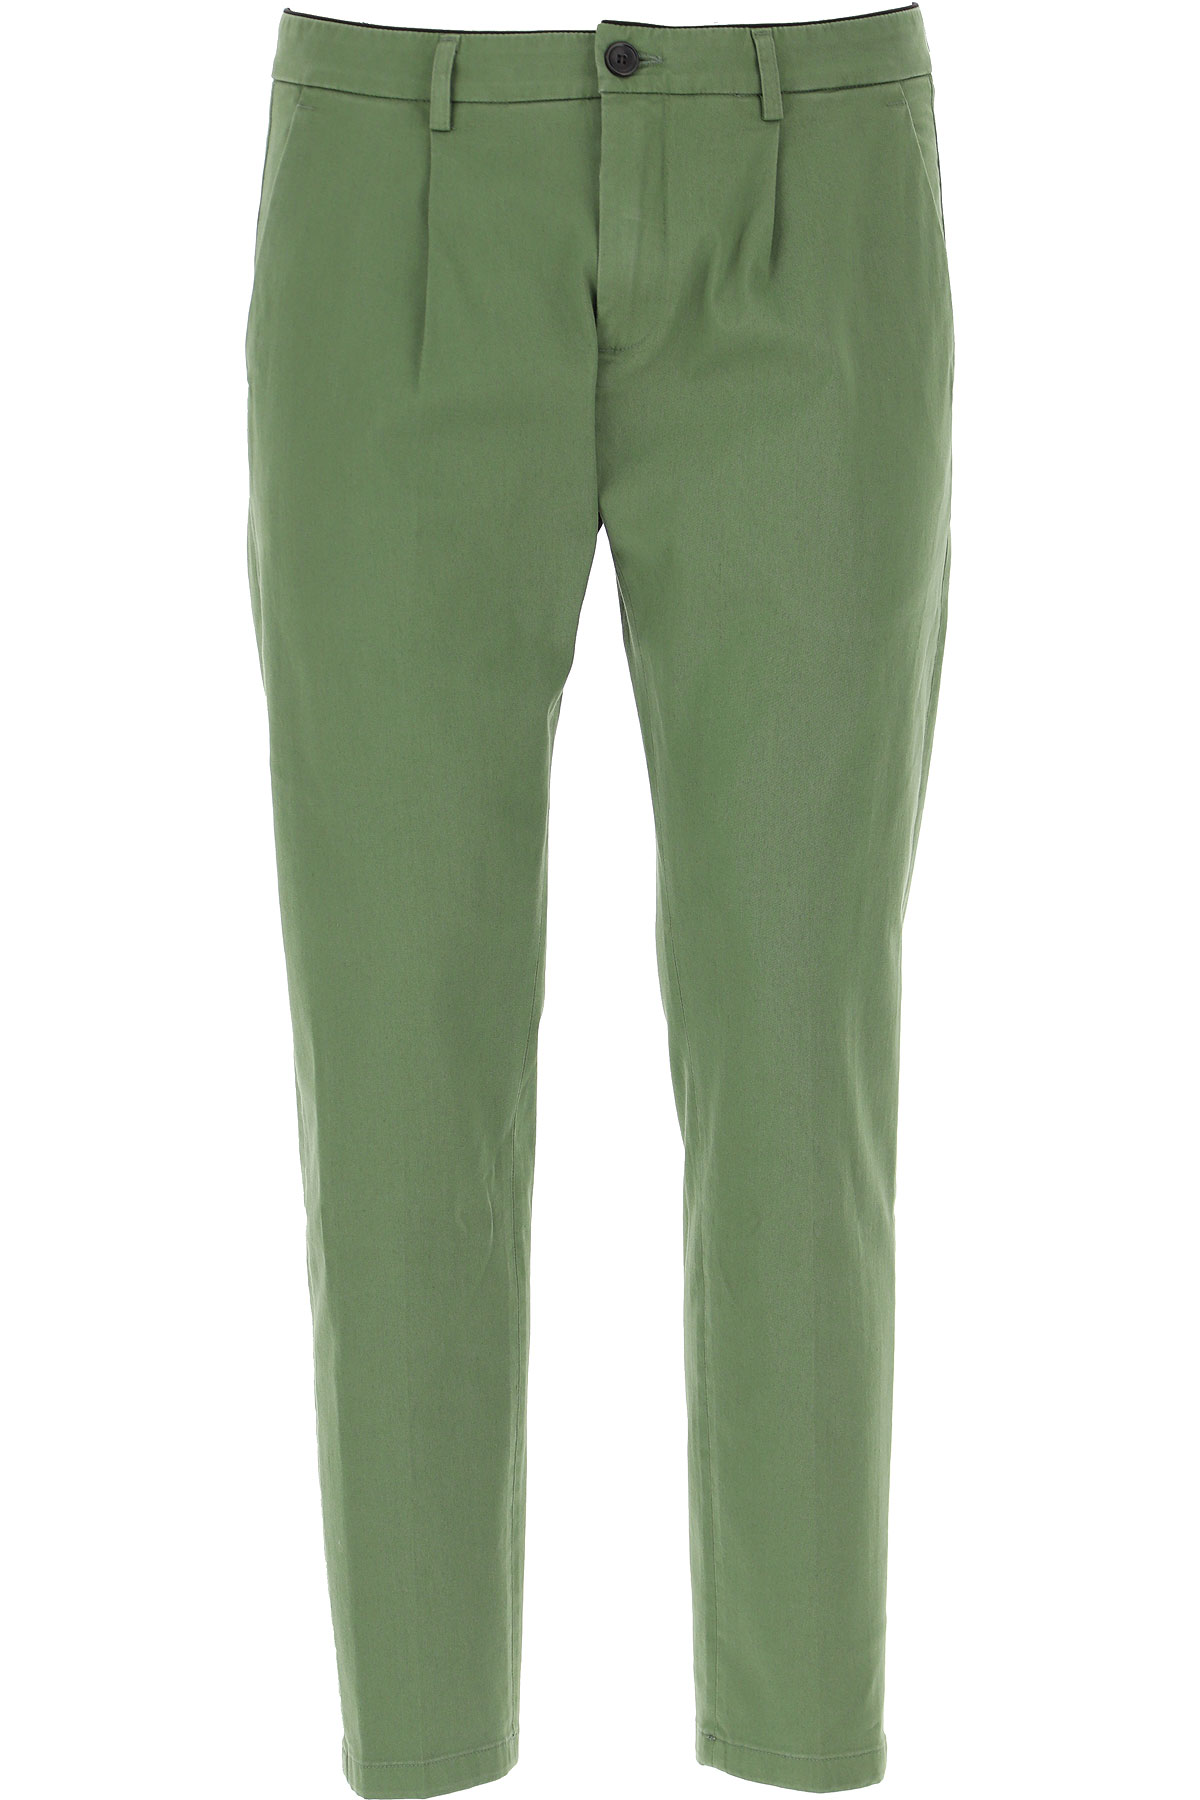 Department Five Pants for Men On Sale, Military Green, Cotton, 2019, 31 32 33 35 36